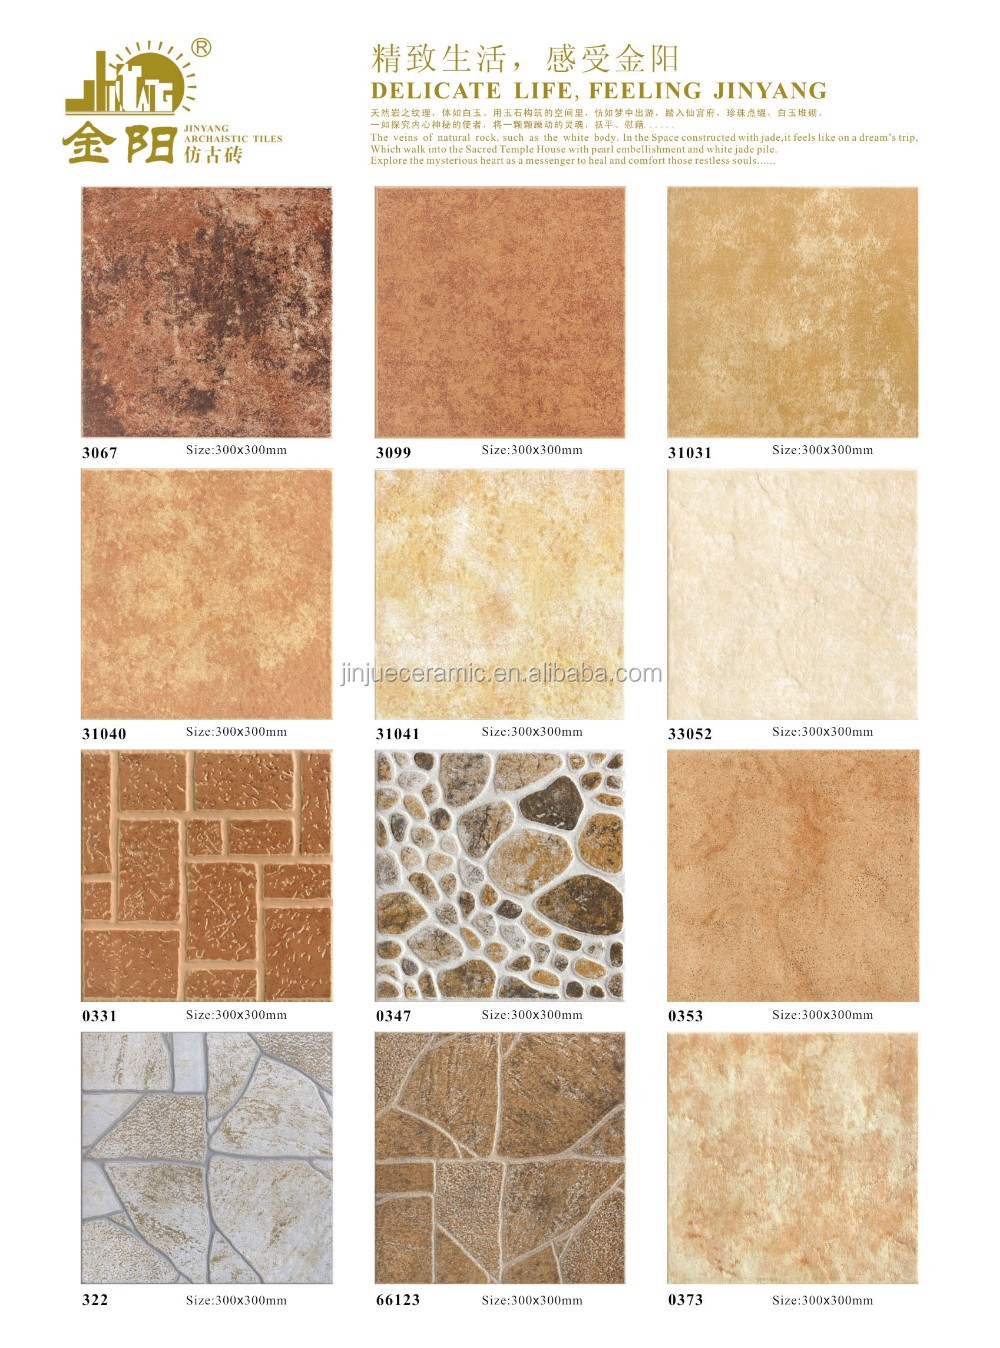 Foshan exporter pakistan lowes flooring ceramic tile made in china foshan exporter pakistan lowes flooring ceramic tile made in china lower price dailygadgetfo Image collections